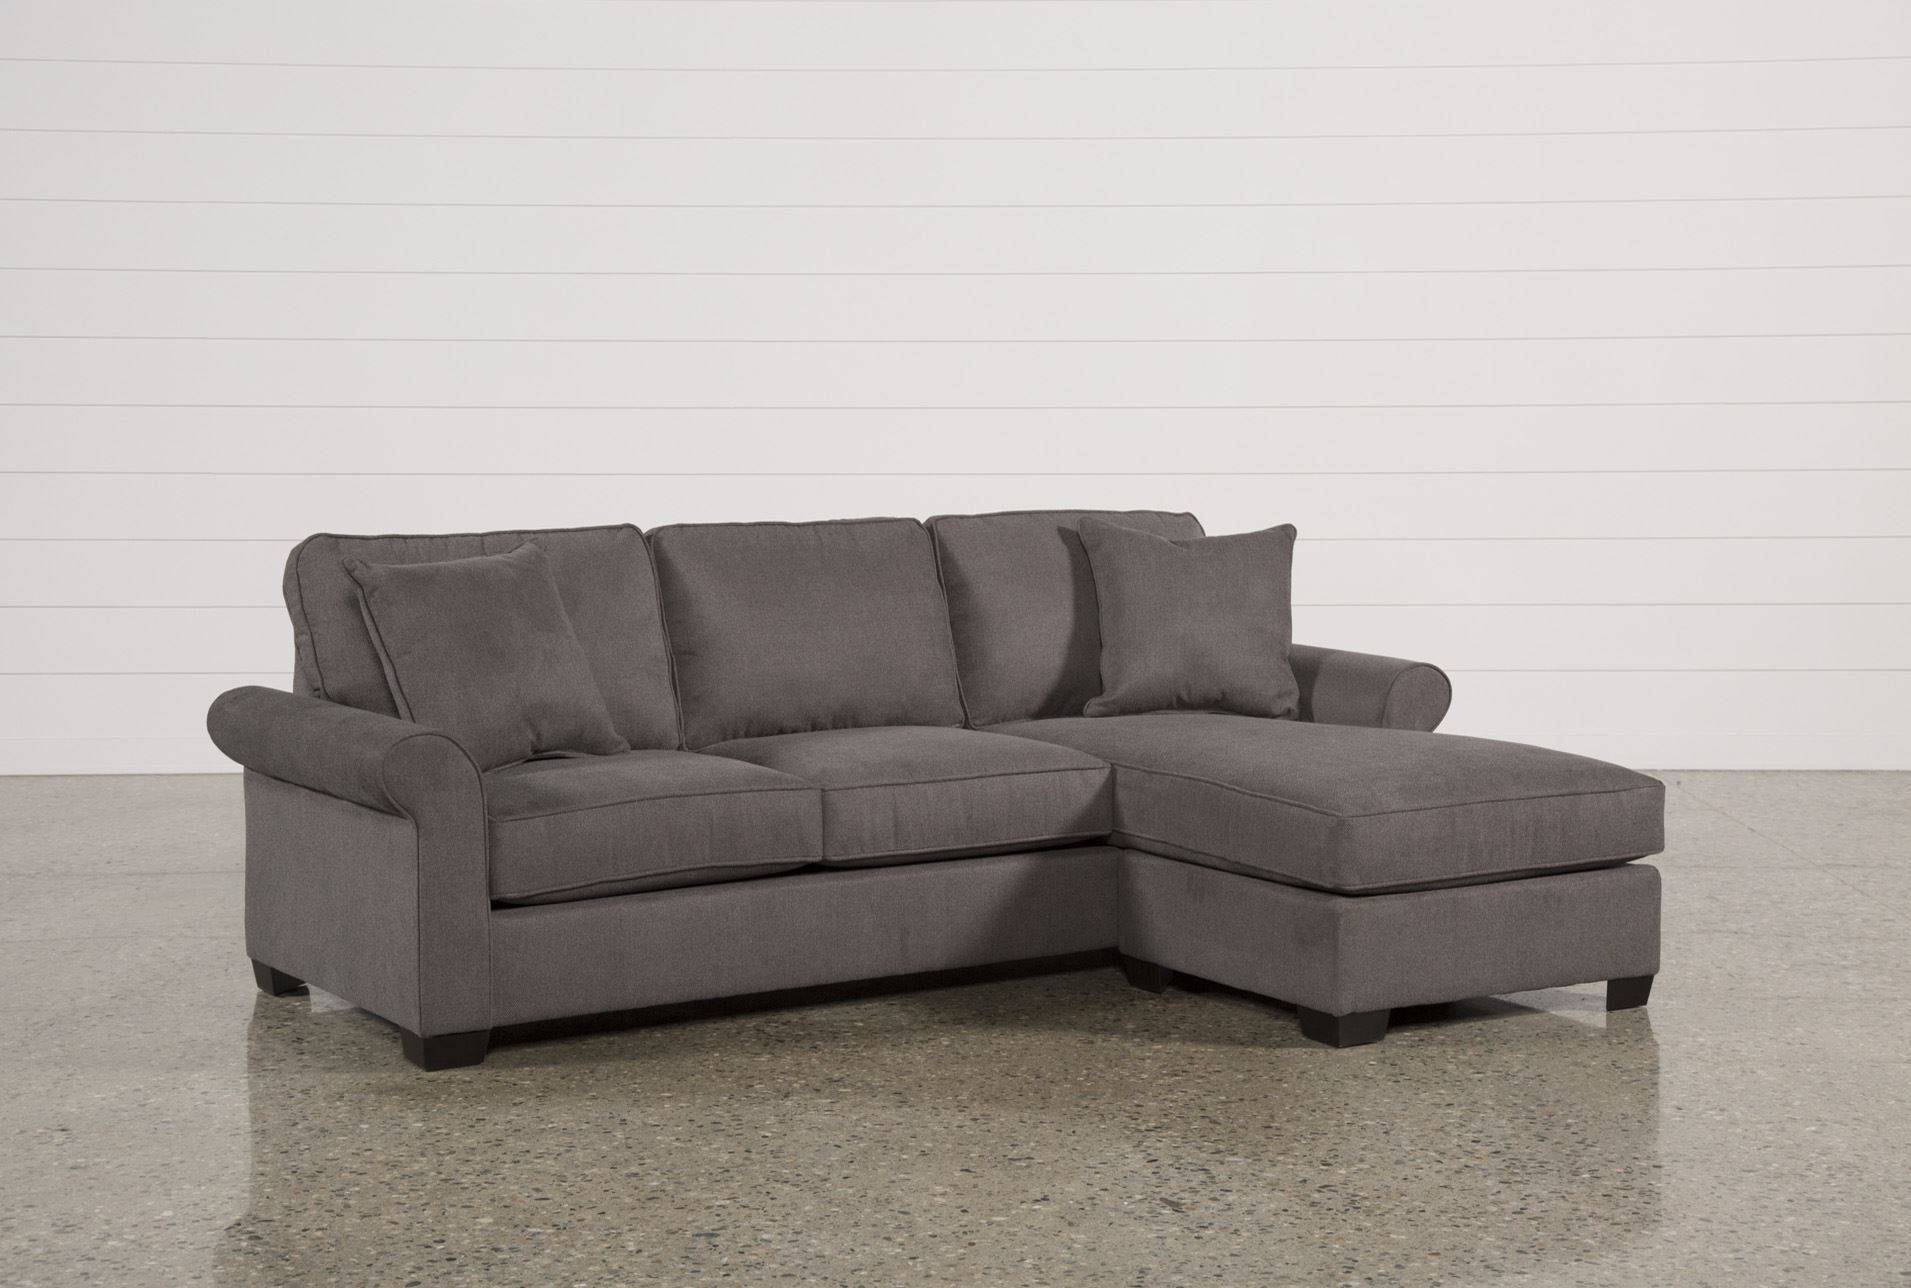 Popular 45 Degree Sectional Sofa 45 On Sofa Sleeper Sectionals regarding 45 Degree Sectional Sofa (Image 16 of 30)